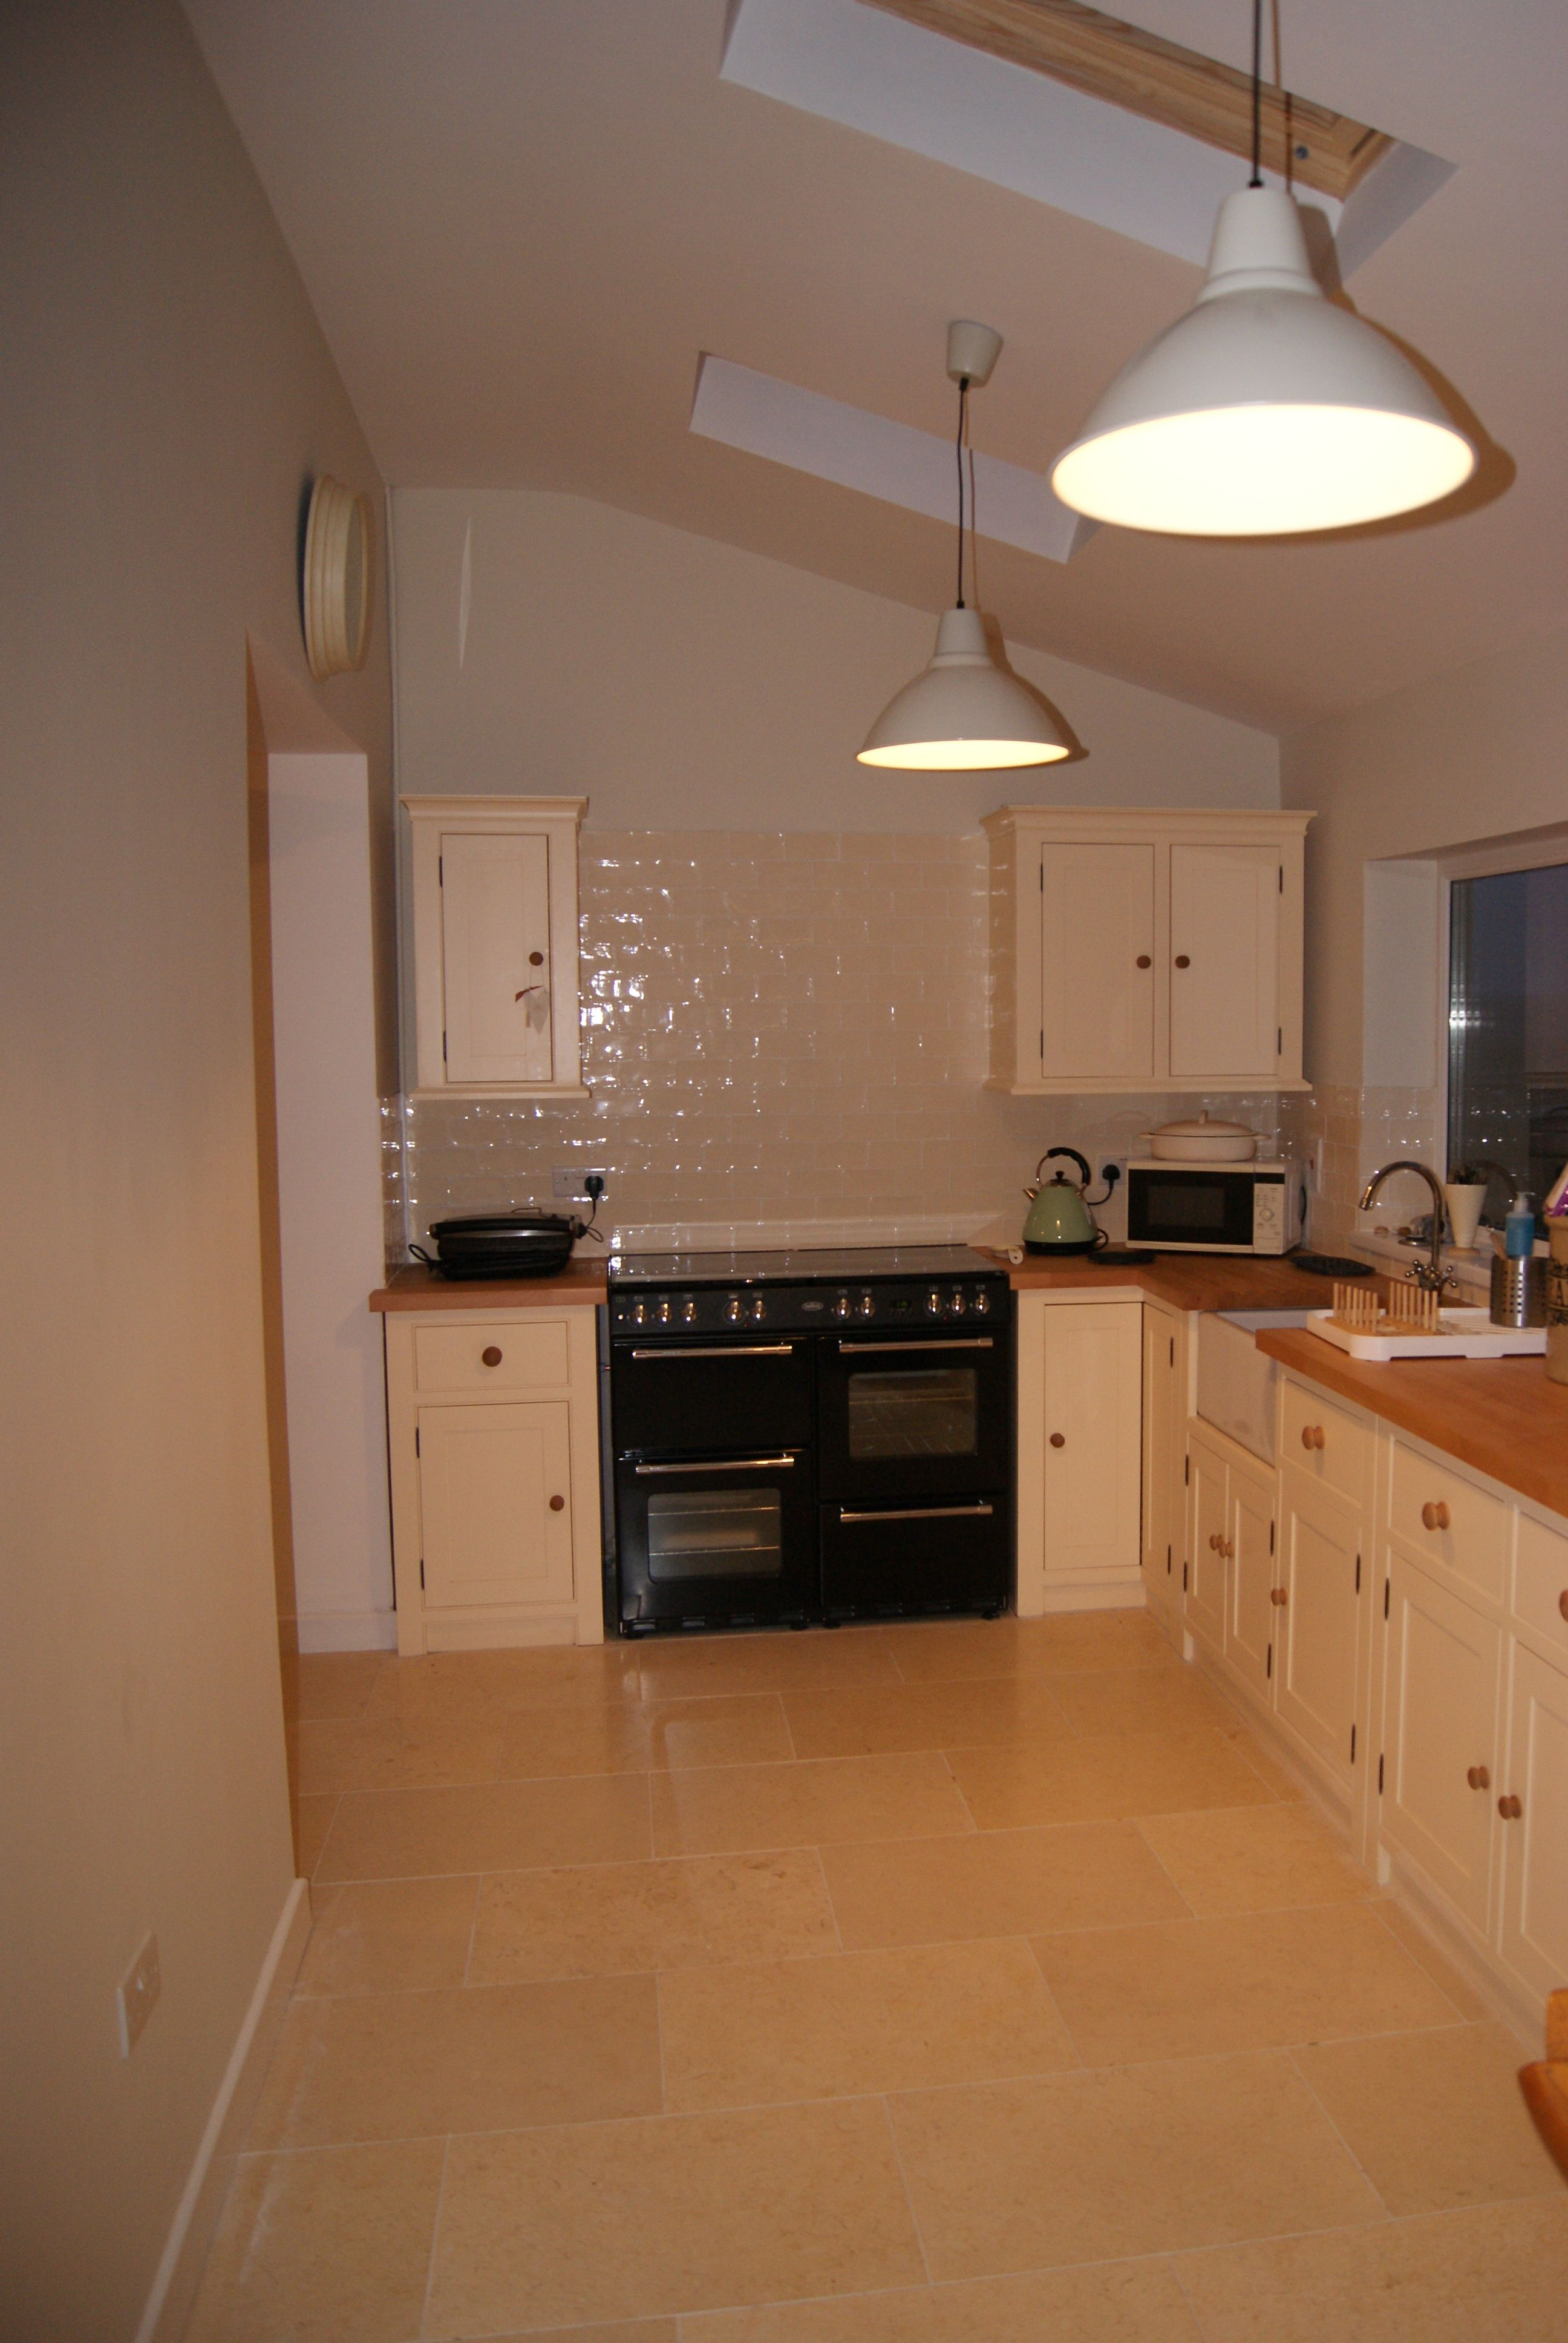 Cream Floor Tiles For Kitchen Kitchen From The Old Creamery In Cream Lights Ikea Belling